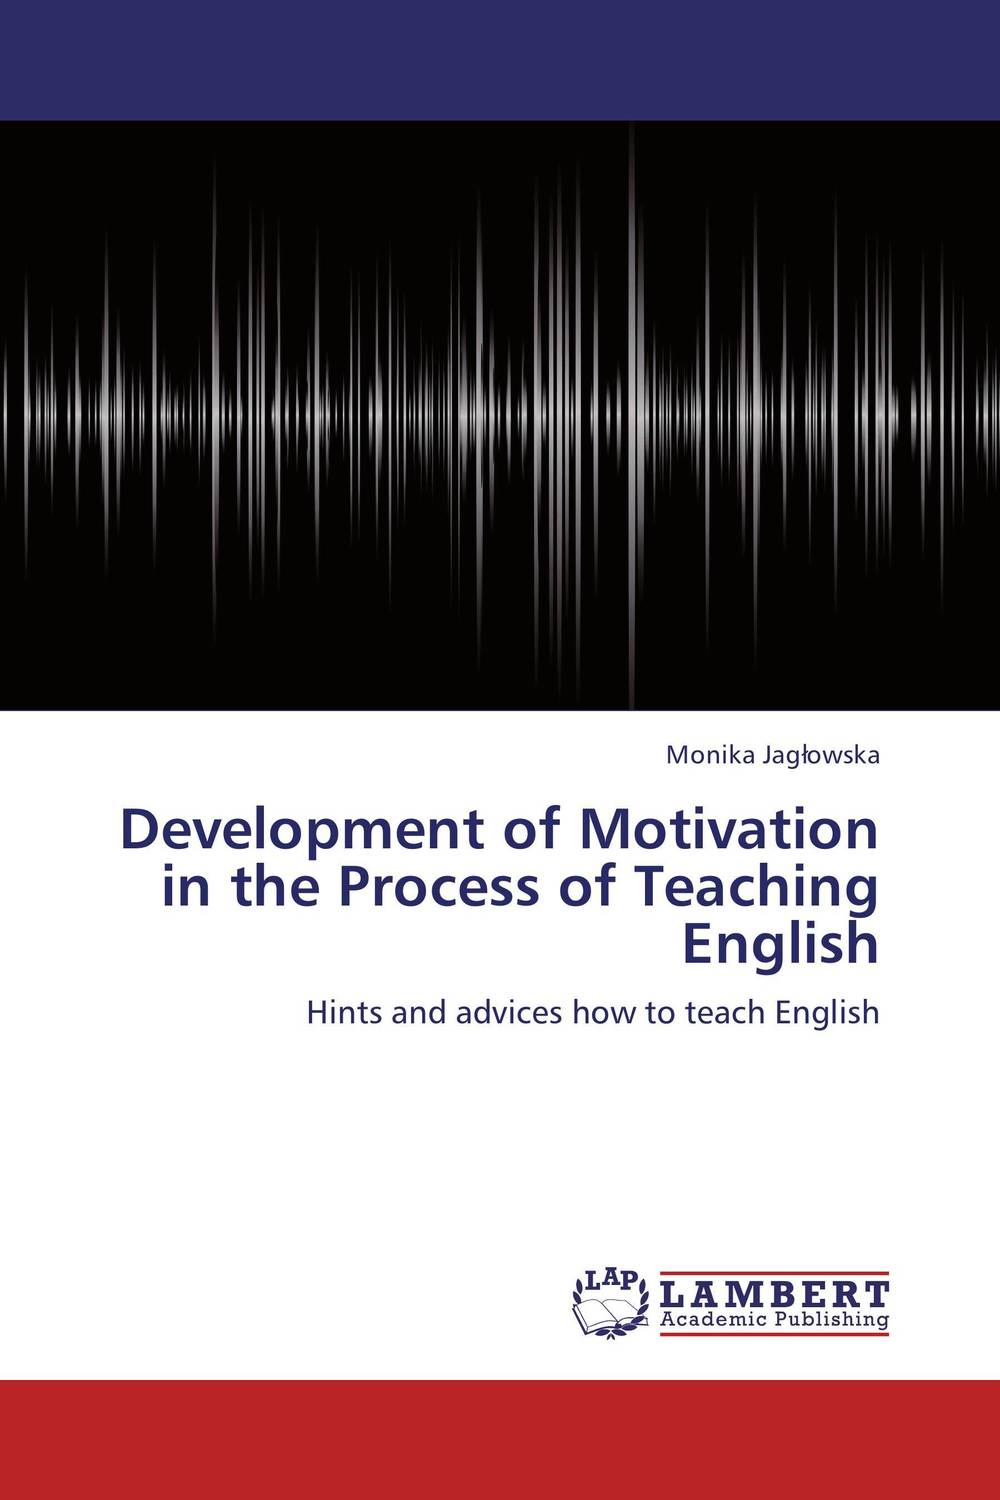 Development of Motivation in the Process of Teaching English pedagogical concerns in management of english language teaching